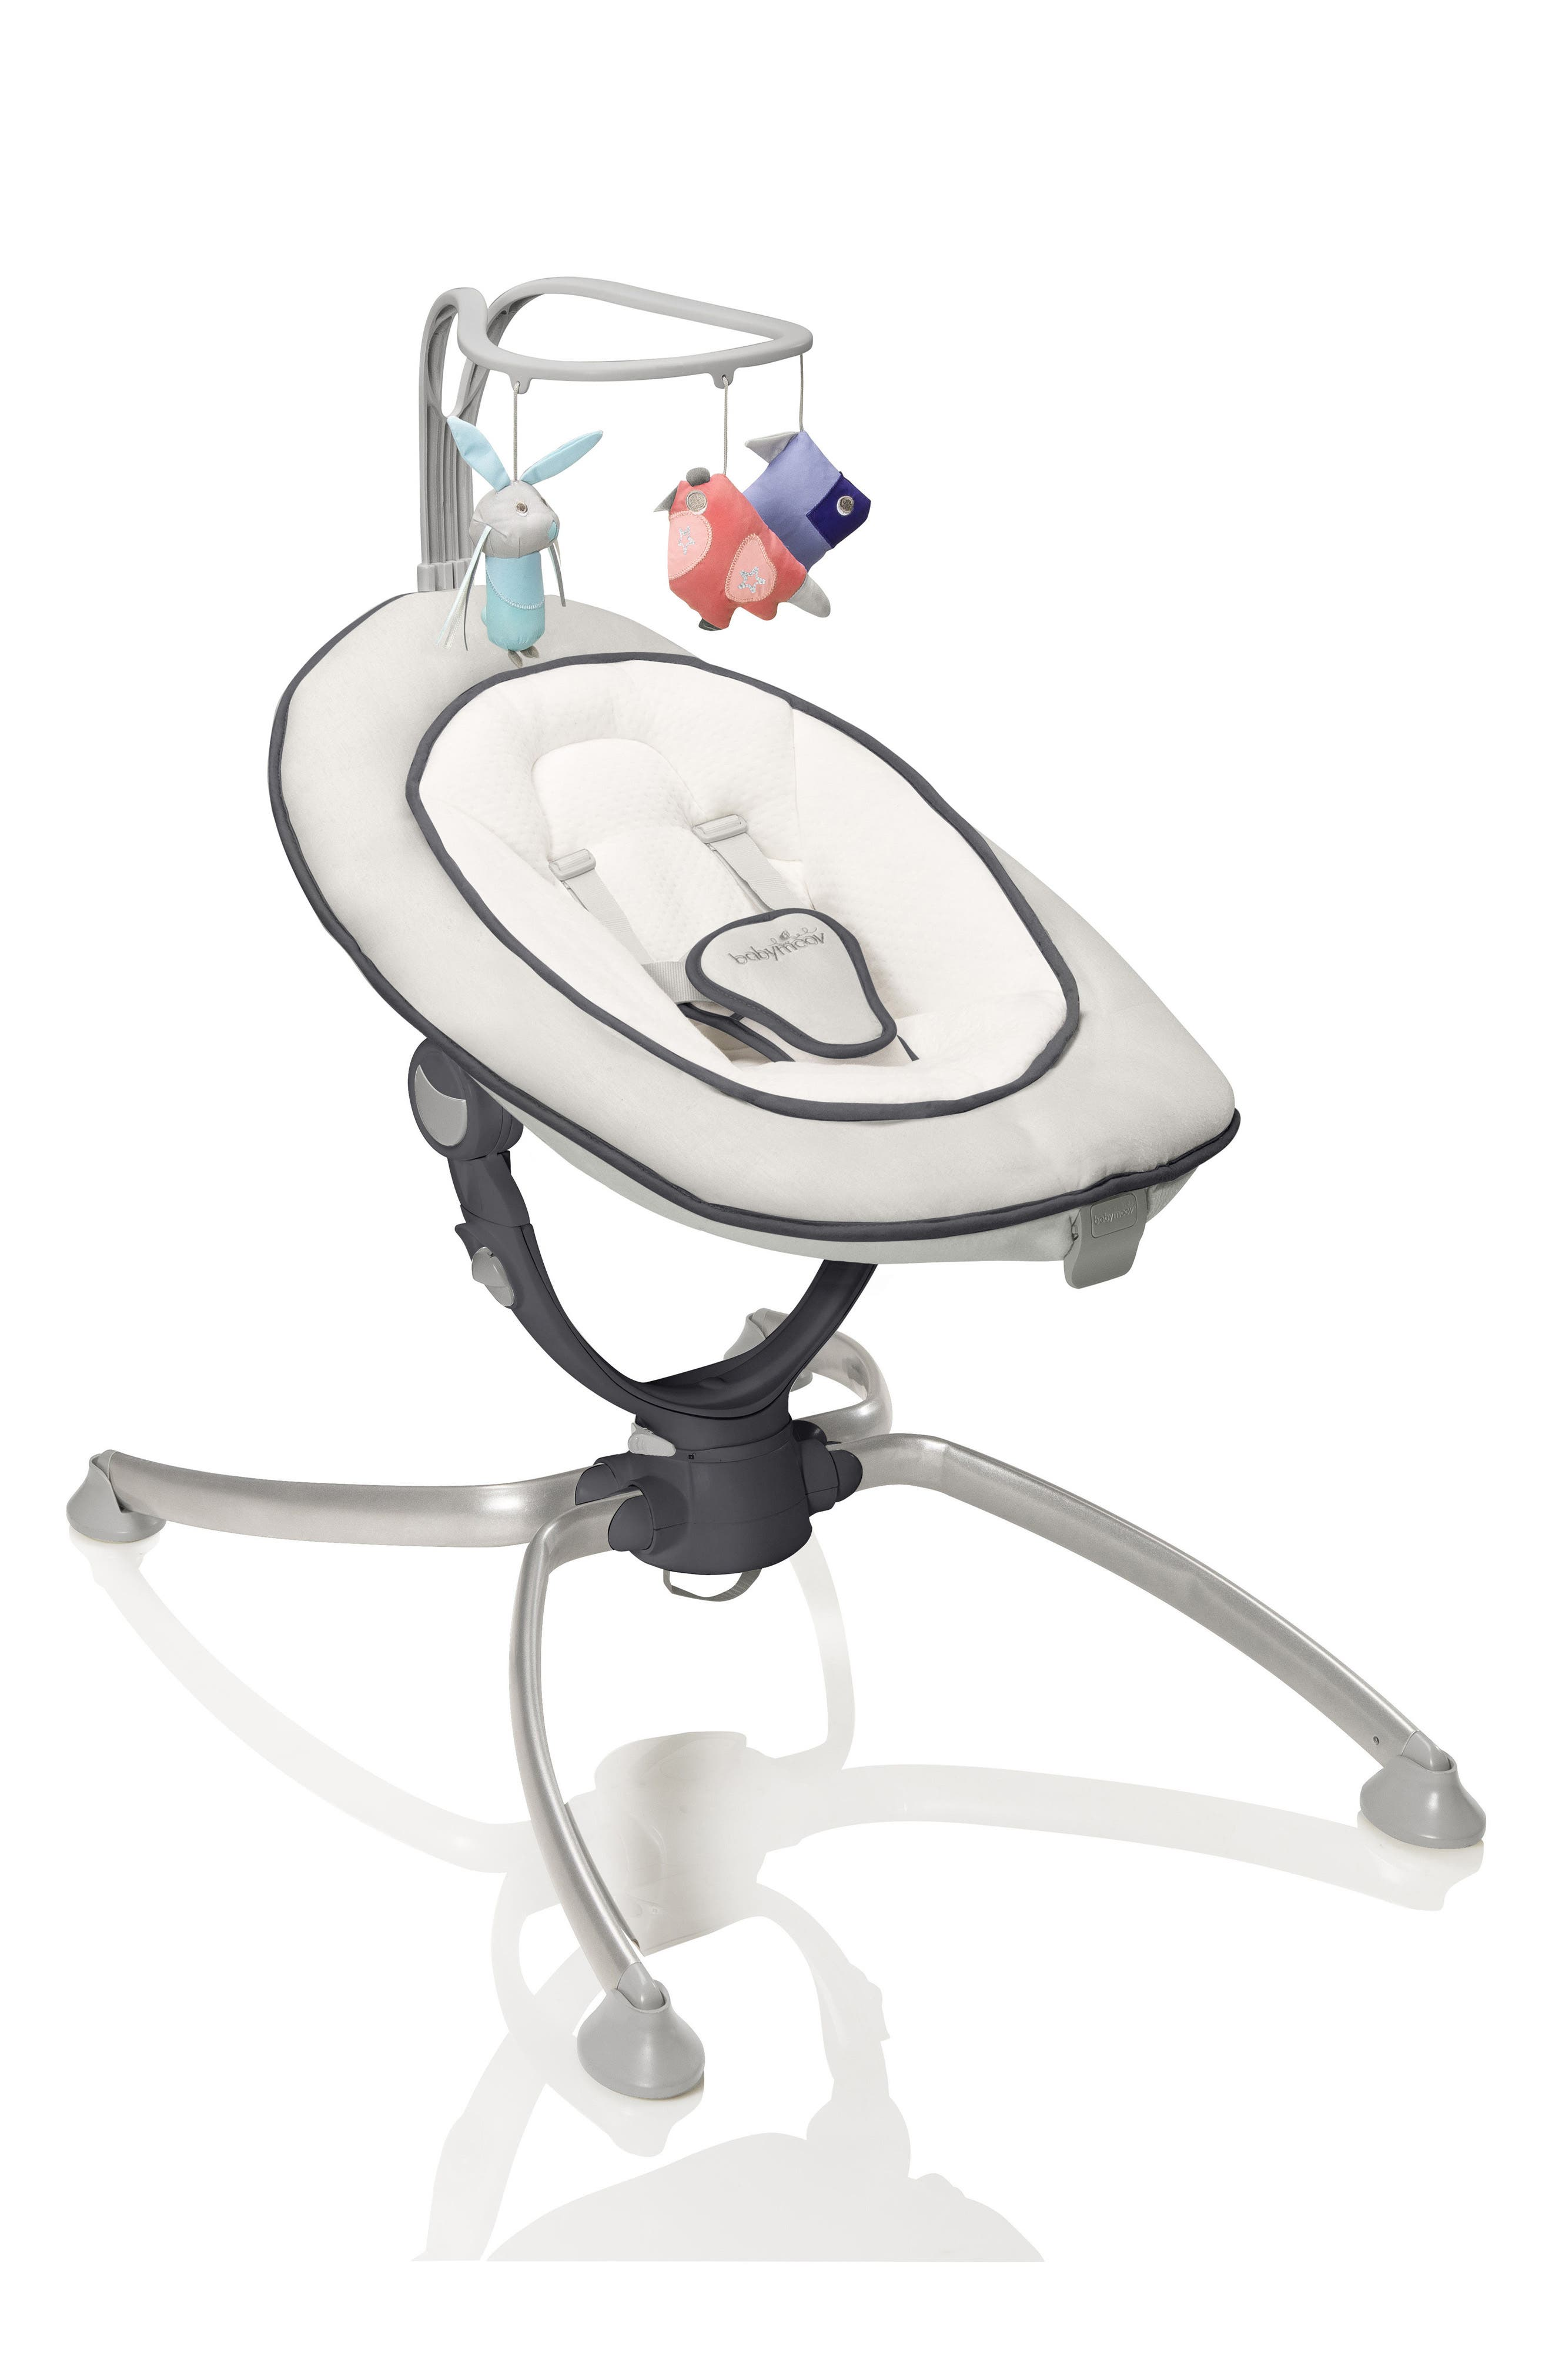 Main Image - Babymoov Swoon Up Baby Bouncer Seat